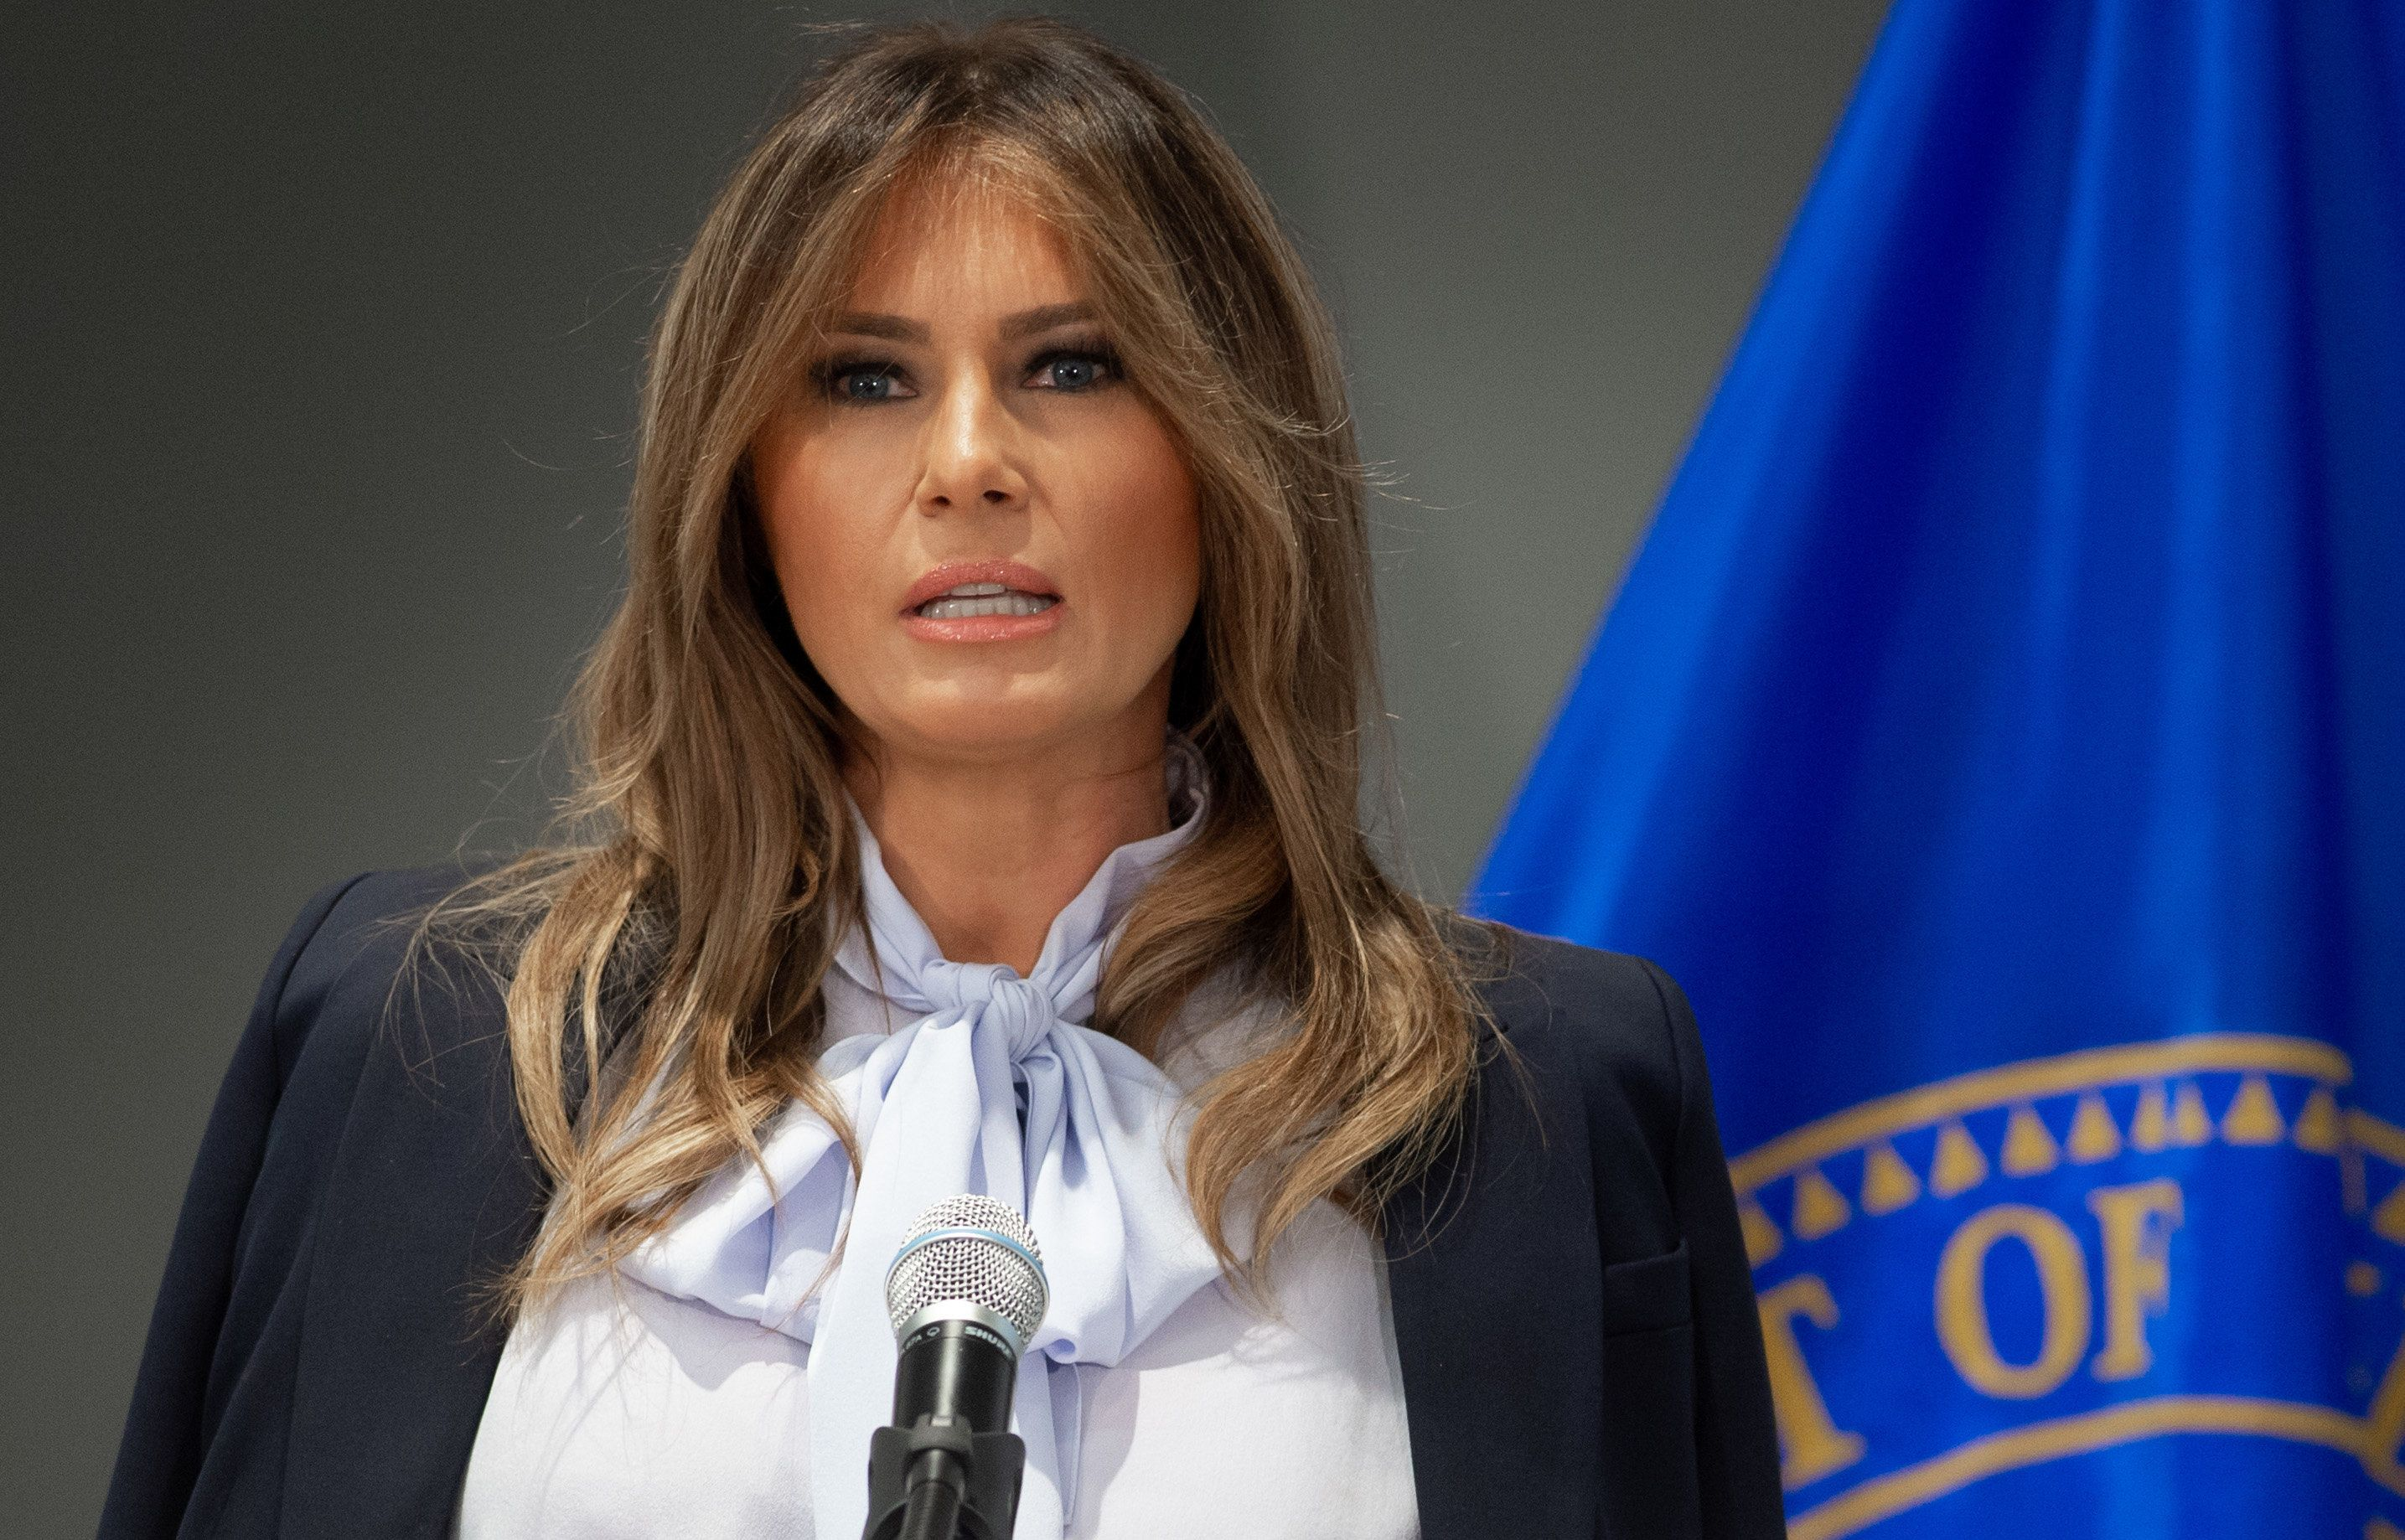 US First Lady Melania Trump speaks during the Federal Partners in Bullying Prevention (FPBP) Cyberbullying Prevention Summit at the US Health Resources and Services Administration building in Rockville, Maryland, August 20, 2018, as part of her 'Be Best' campaign. (Photo by SAUL LOEB / AFP)        (Photo credit should read SAUL LOEB/AFP/Getty Images)